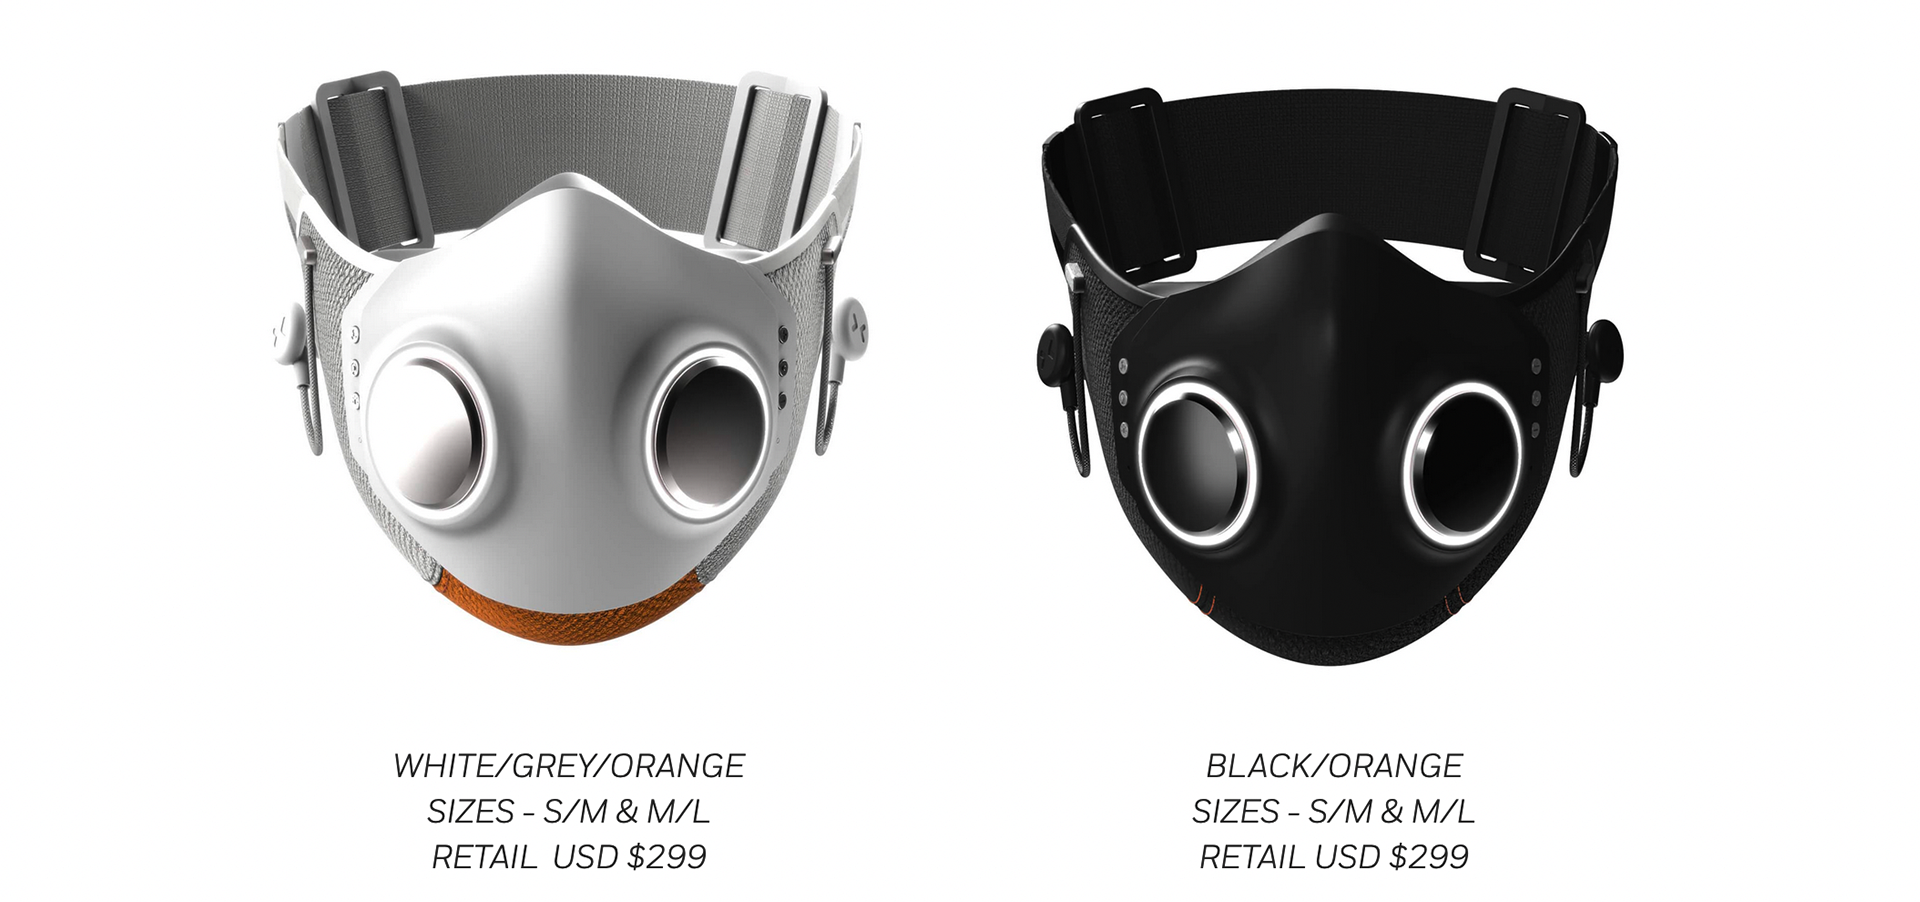 Photos of the Xupermask in white and black.